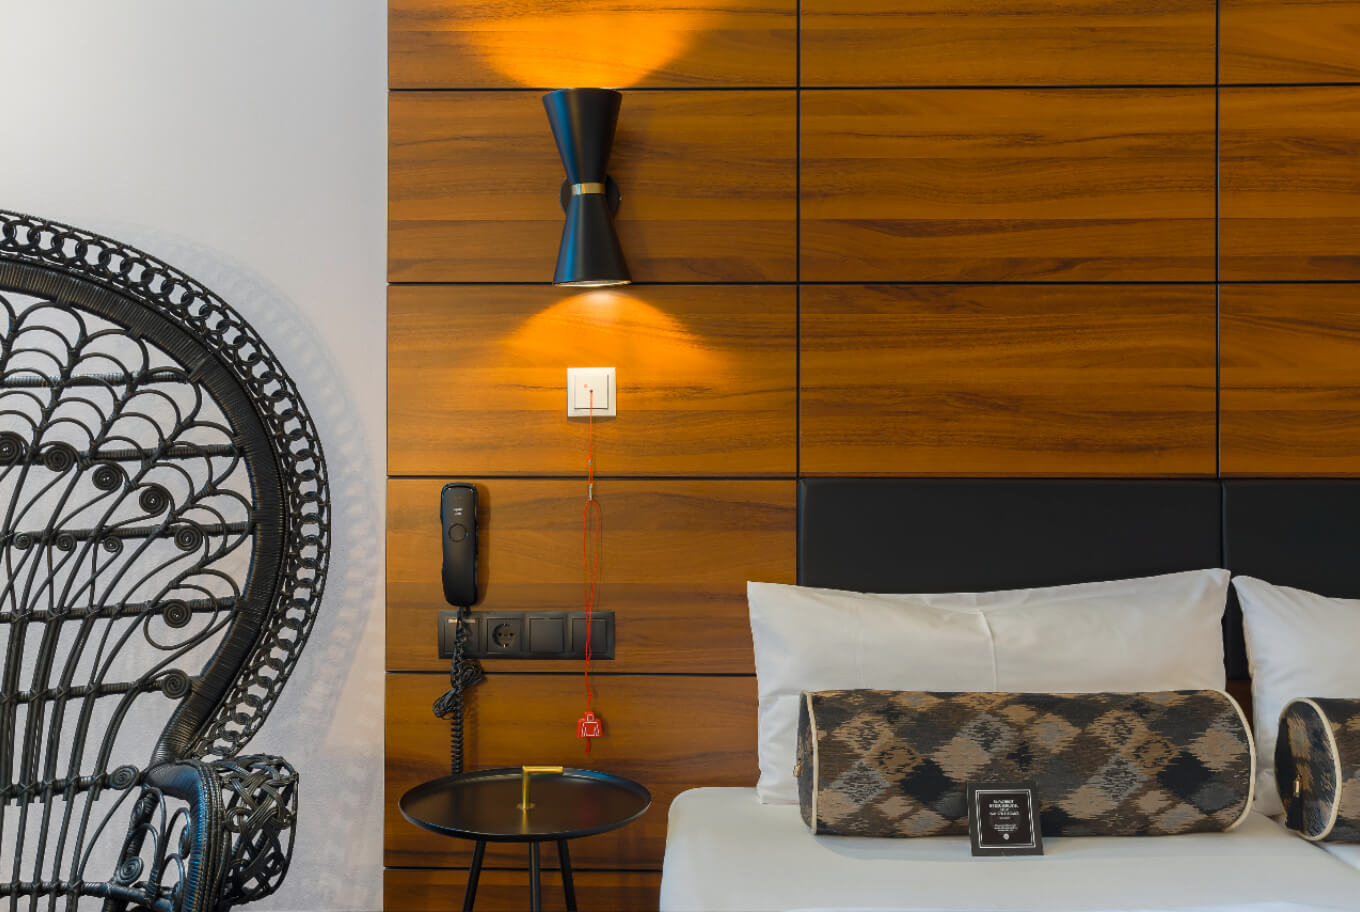 Handicapped accessible room at the Arthotel ANA Diva